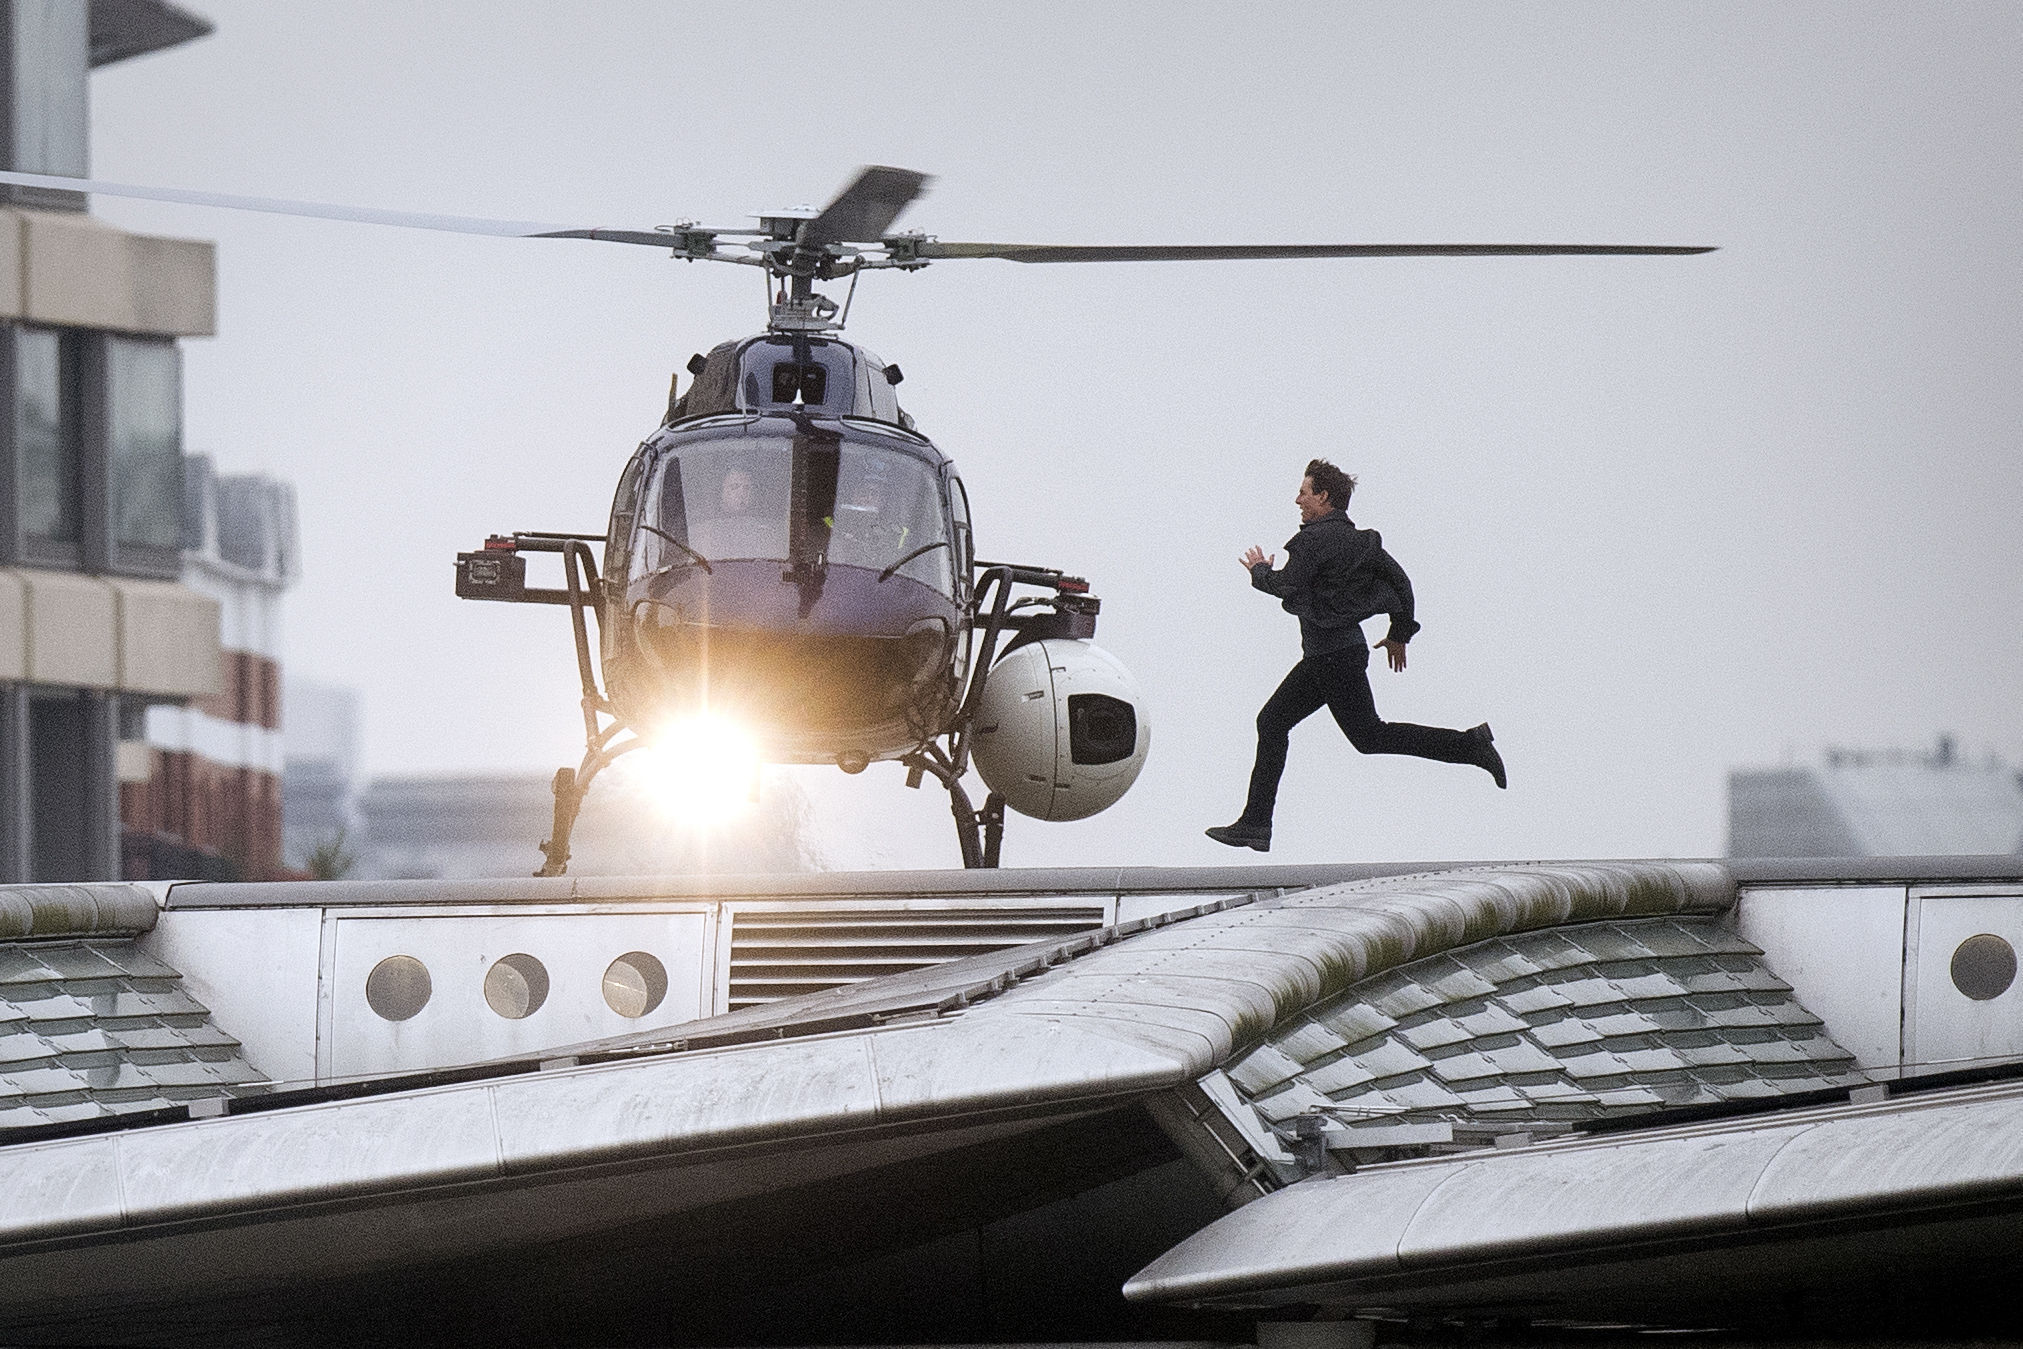 Tom Cruise reveals new Mission: Impossible film title in Instagram debut